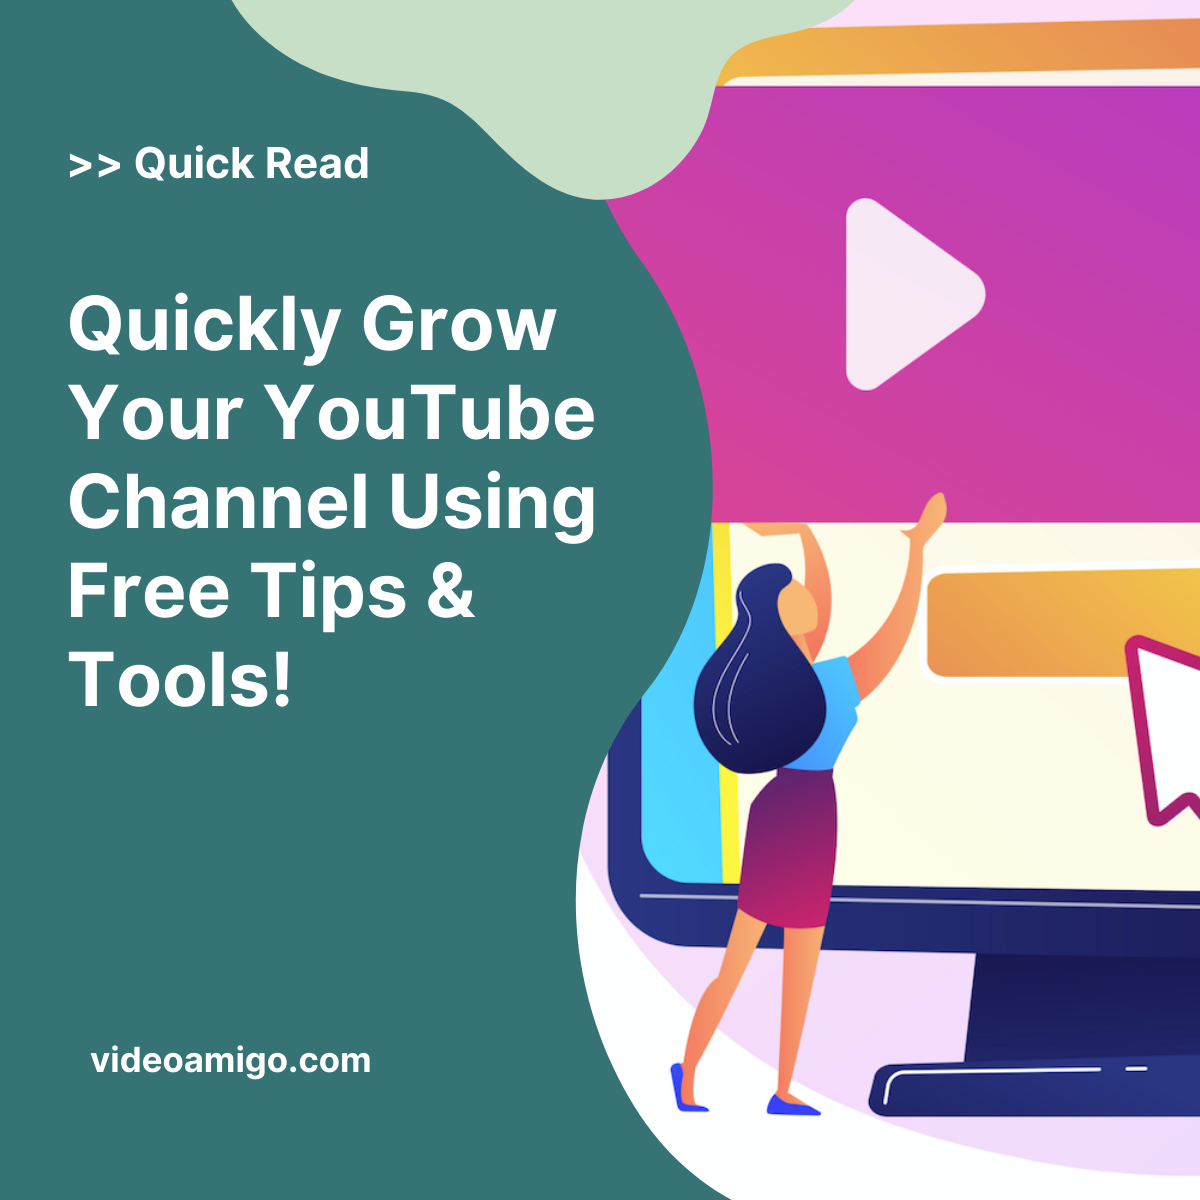 3 Quick Tips to Build Your YouTube Brand